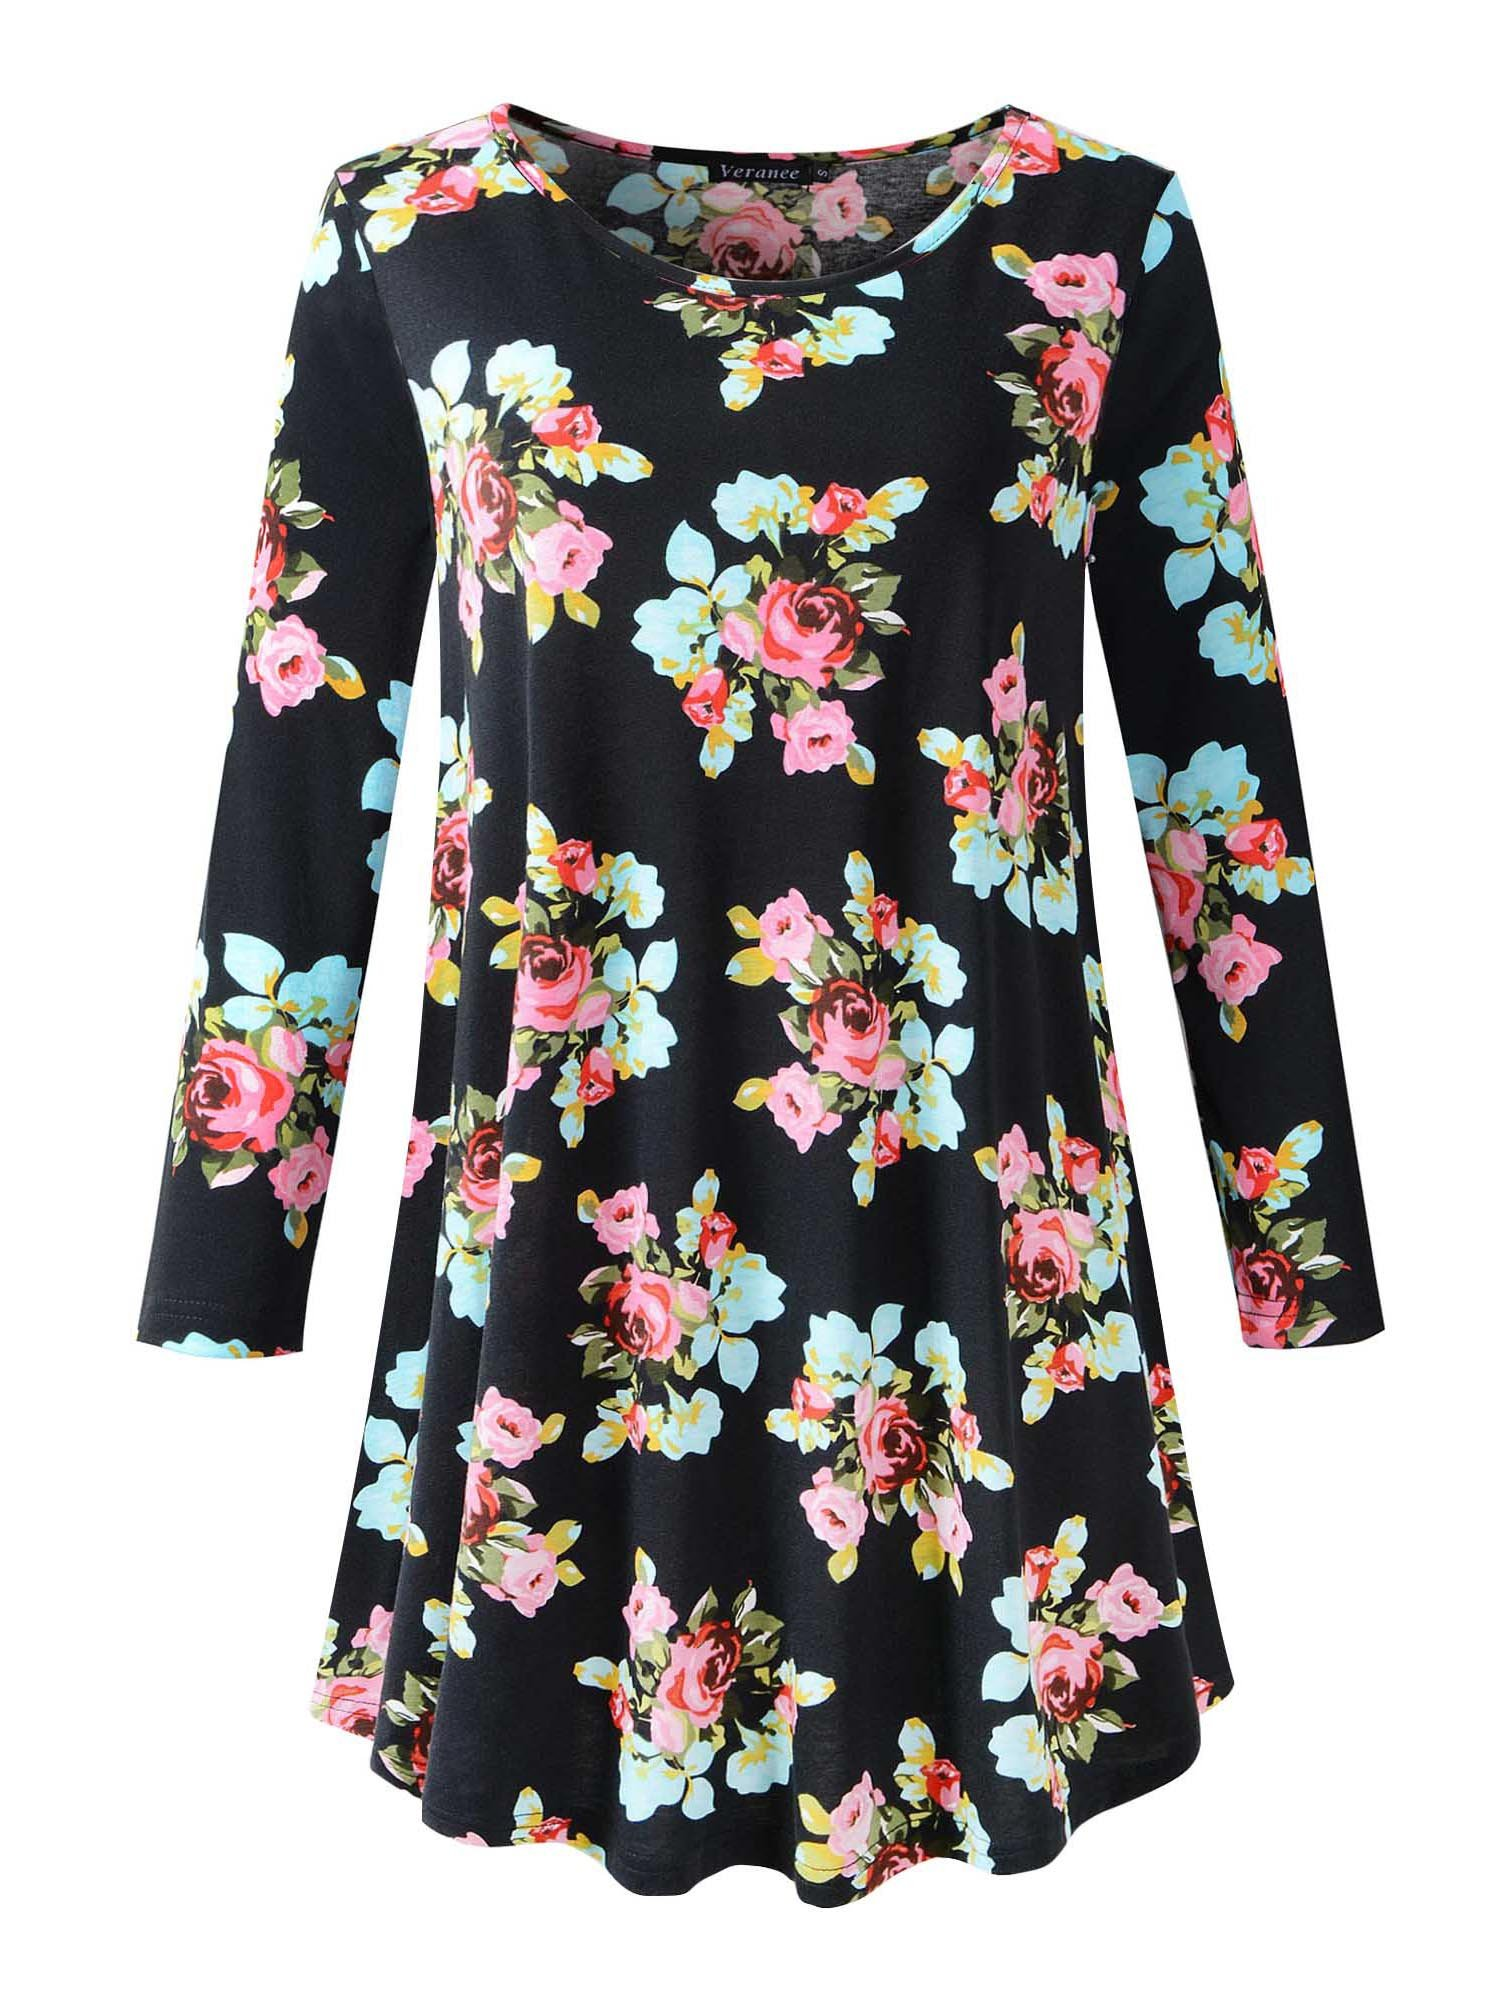 Veranee Women's Plus Size Swing Tunic Top 3/4 Sleeve Floral Flare T-Shirt Large 16-1